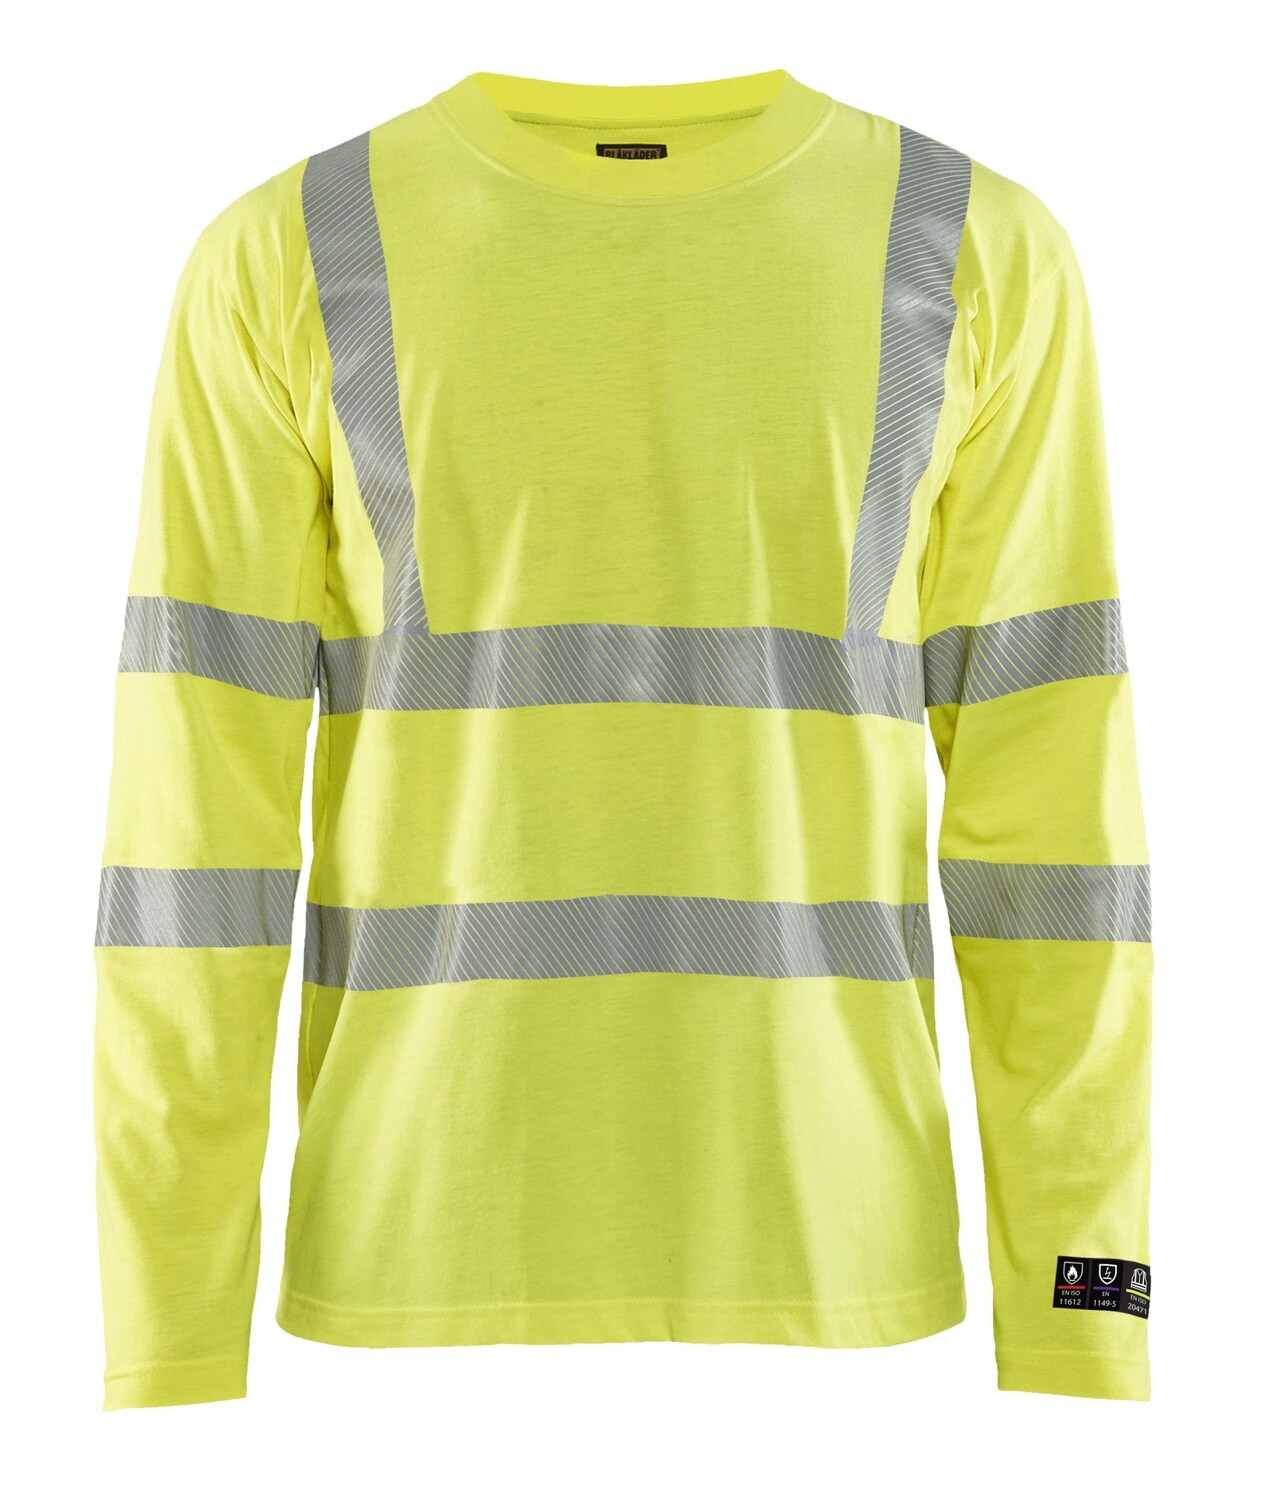 T-shirt multinormes manches longues